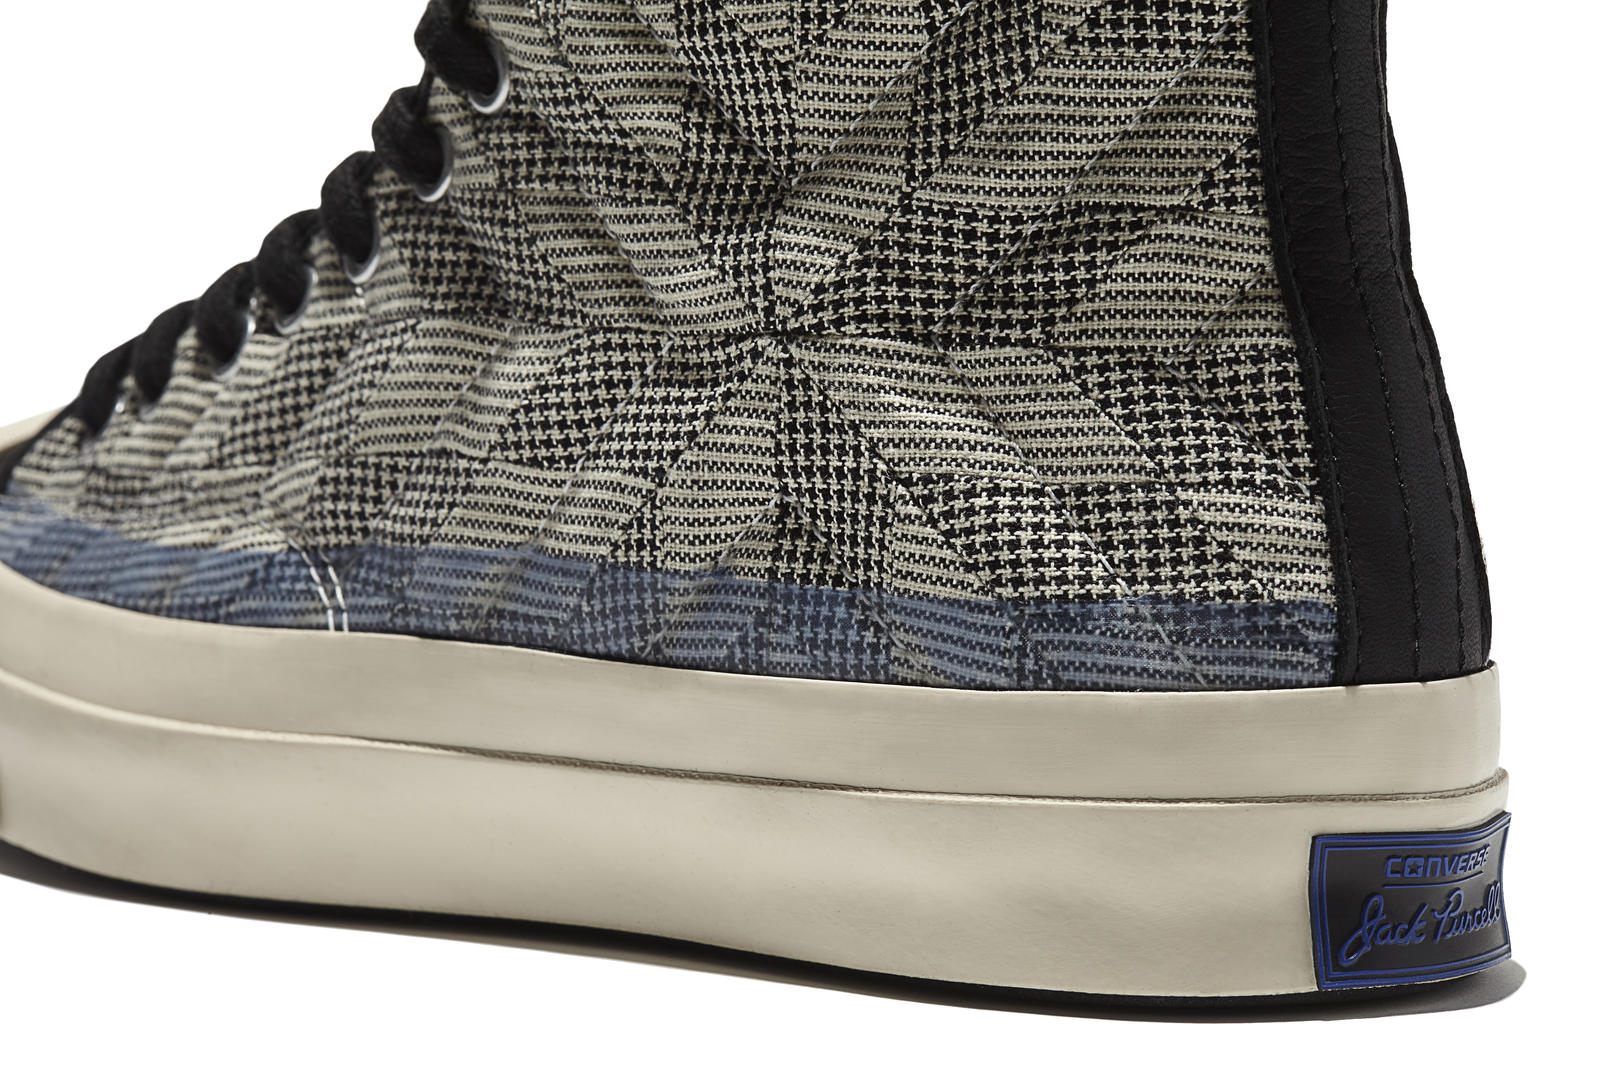 "e98f5c1d04a79b Fh16 Fs Jp Signature Quilt Detail1 155264 C 0880. ""The new Jack Purcell ..."